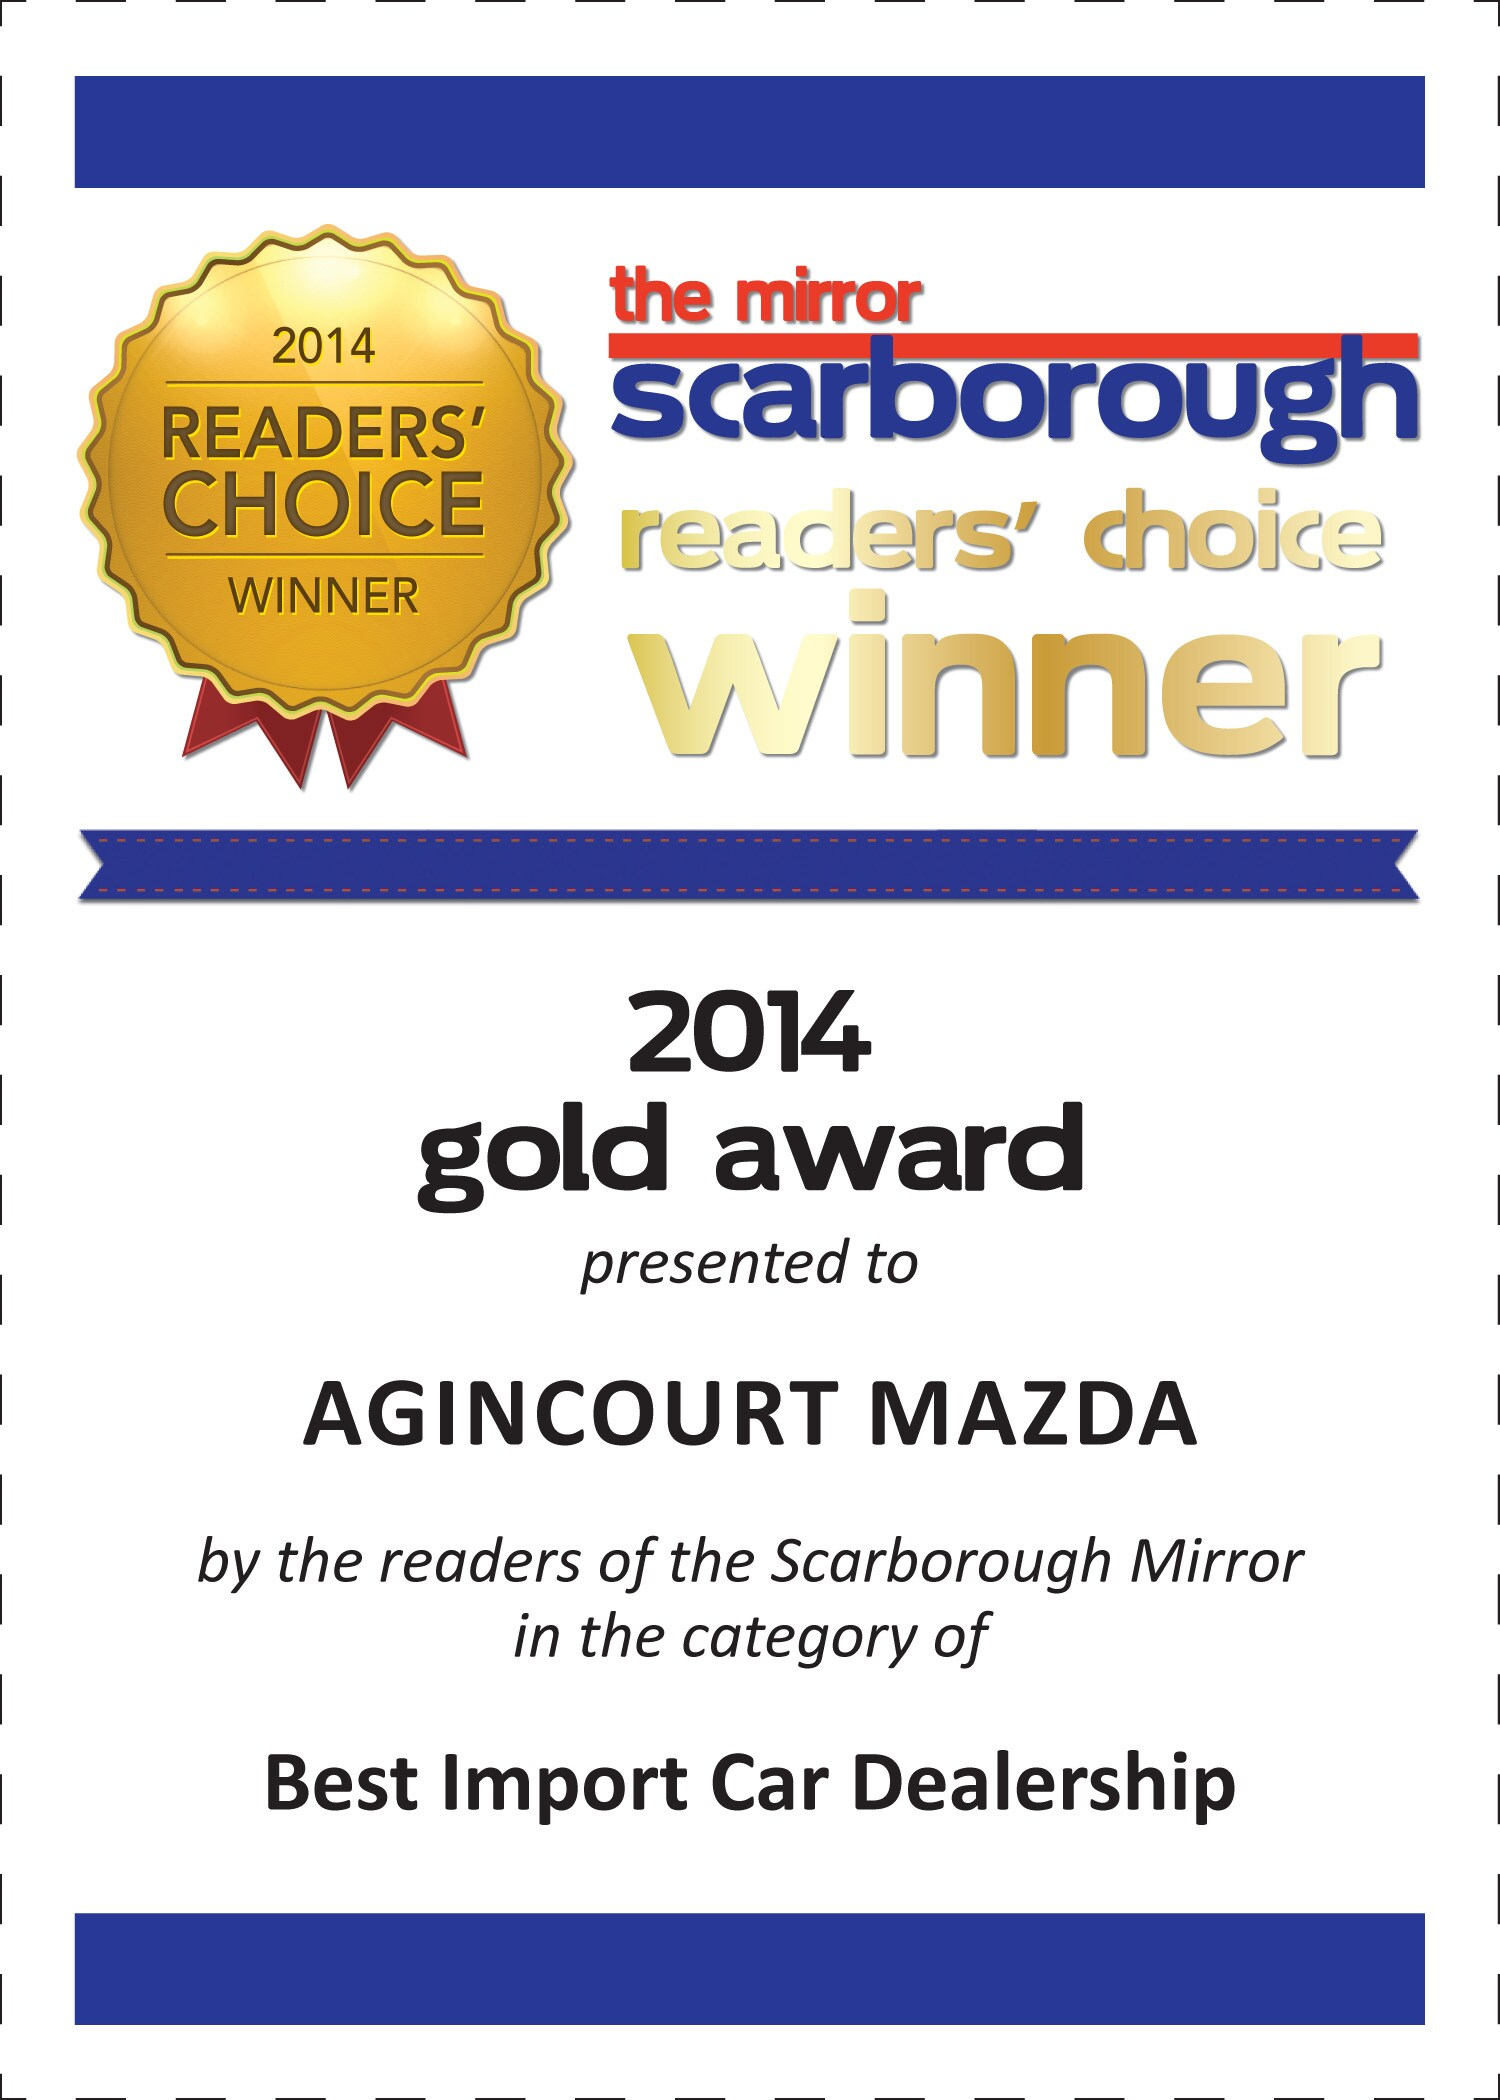 about agincourt mazda new mazda used car dealer. Black Bedroom Furniture Sets. Home Design Ideas